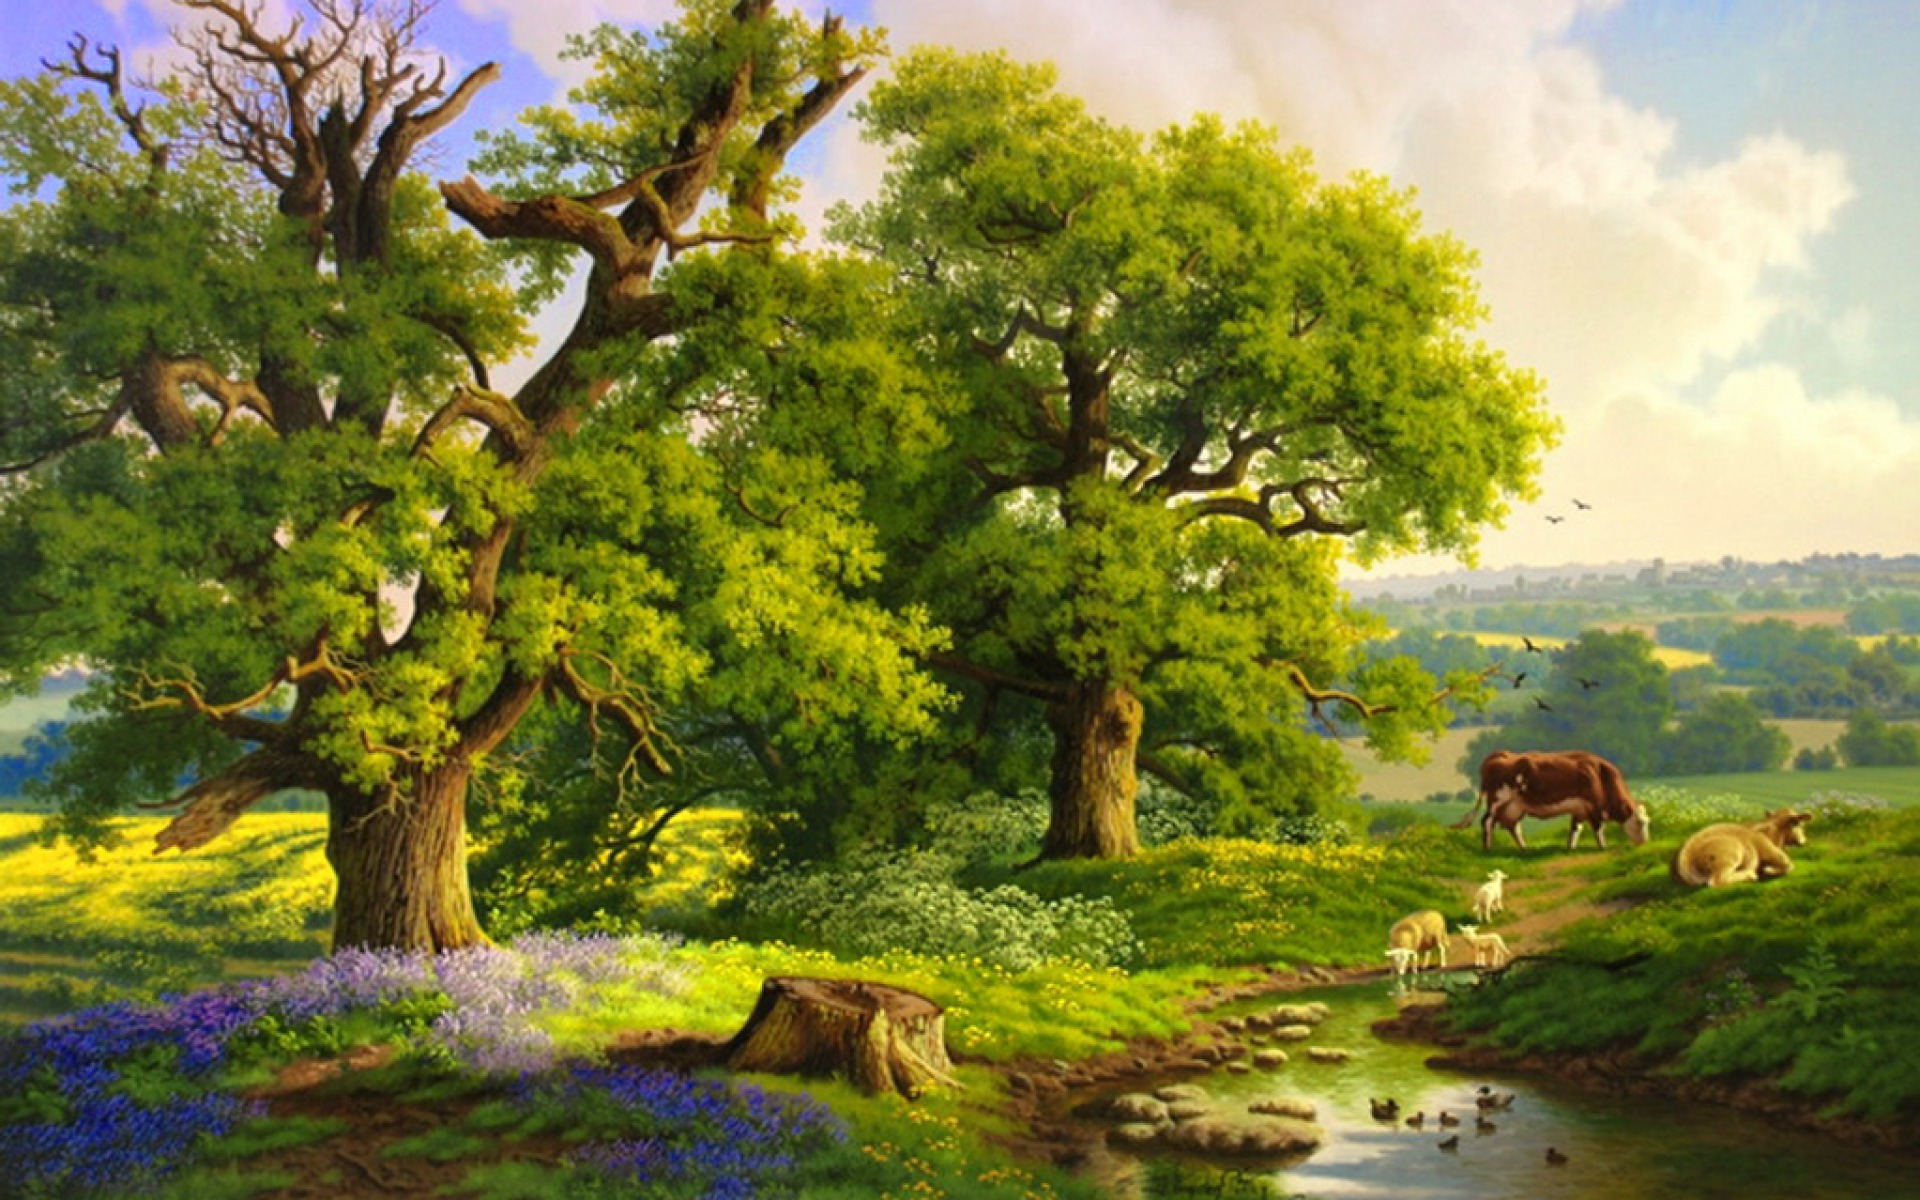 Facebook Wallpaper For Profile 3d Trees Creek Sheeps Cows Field Wallpapers Trees Creek